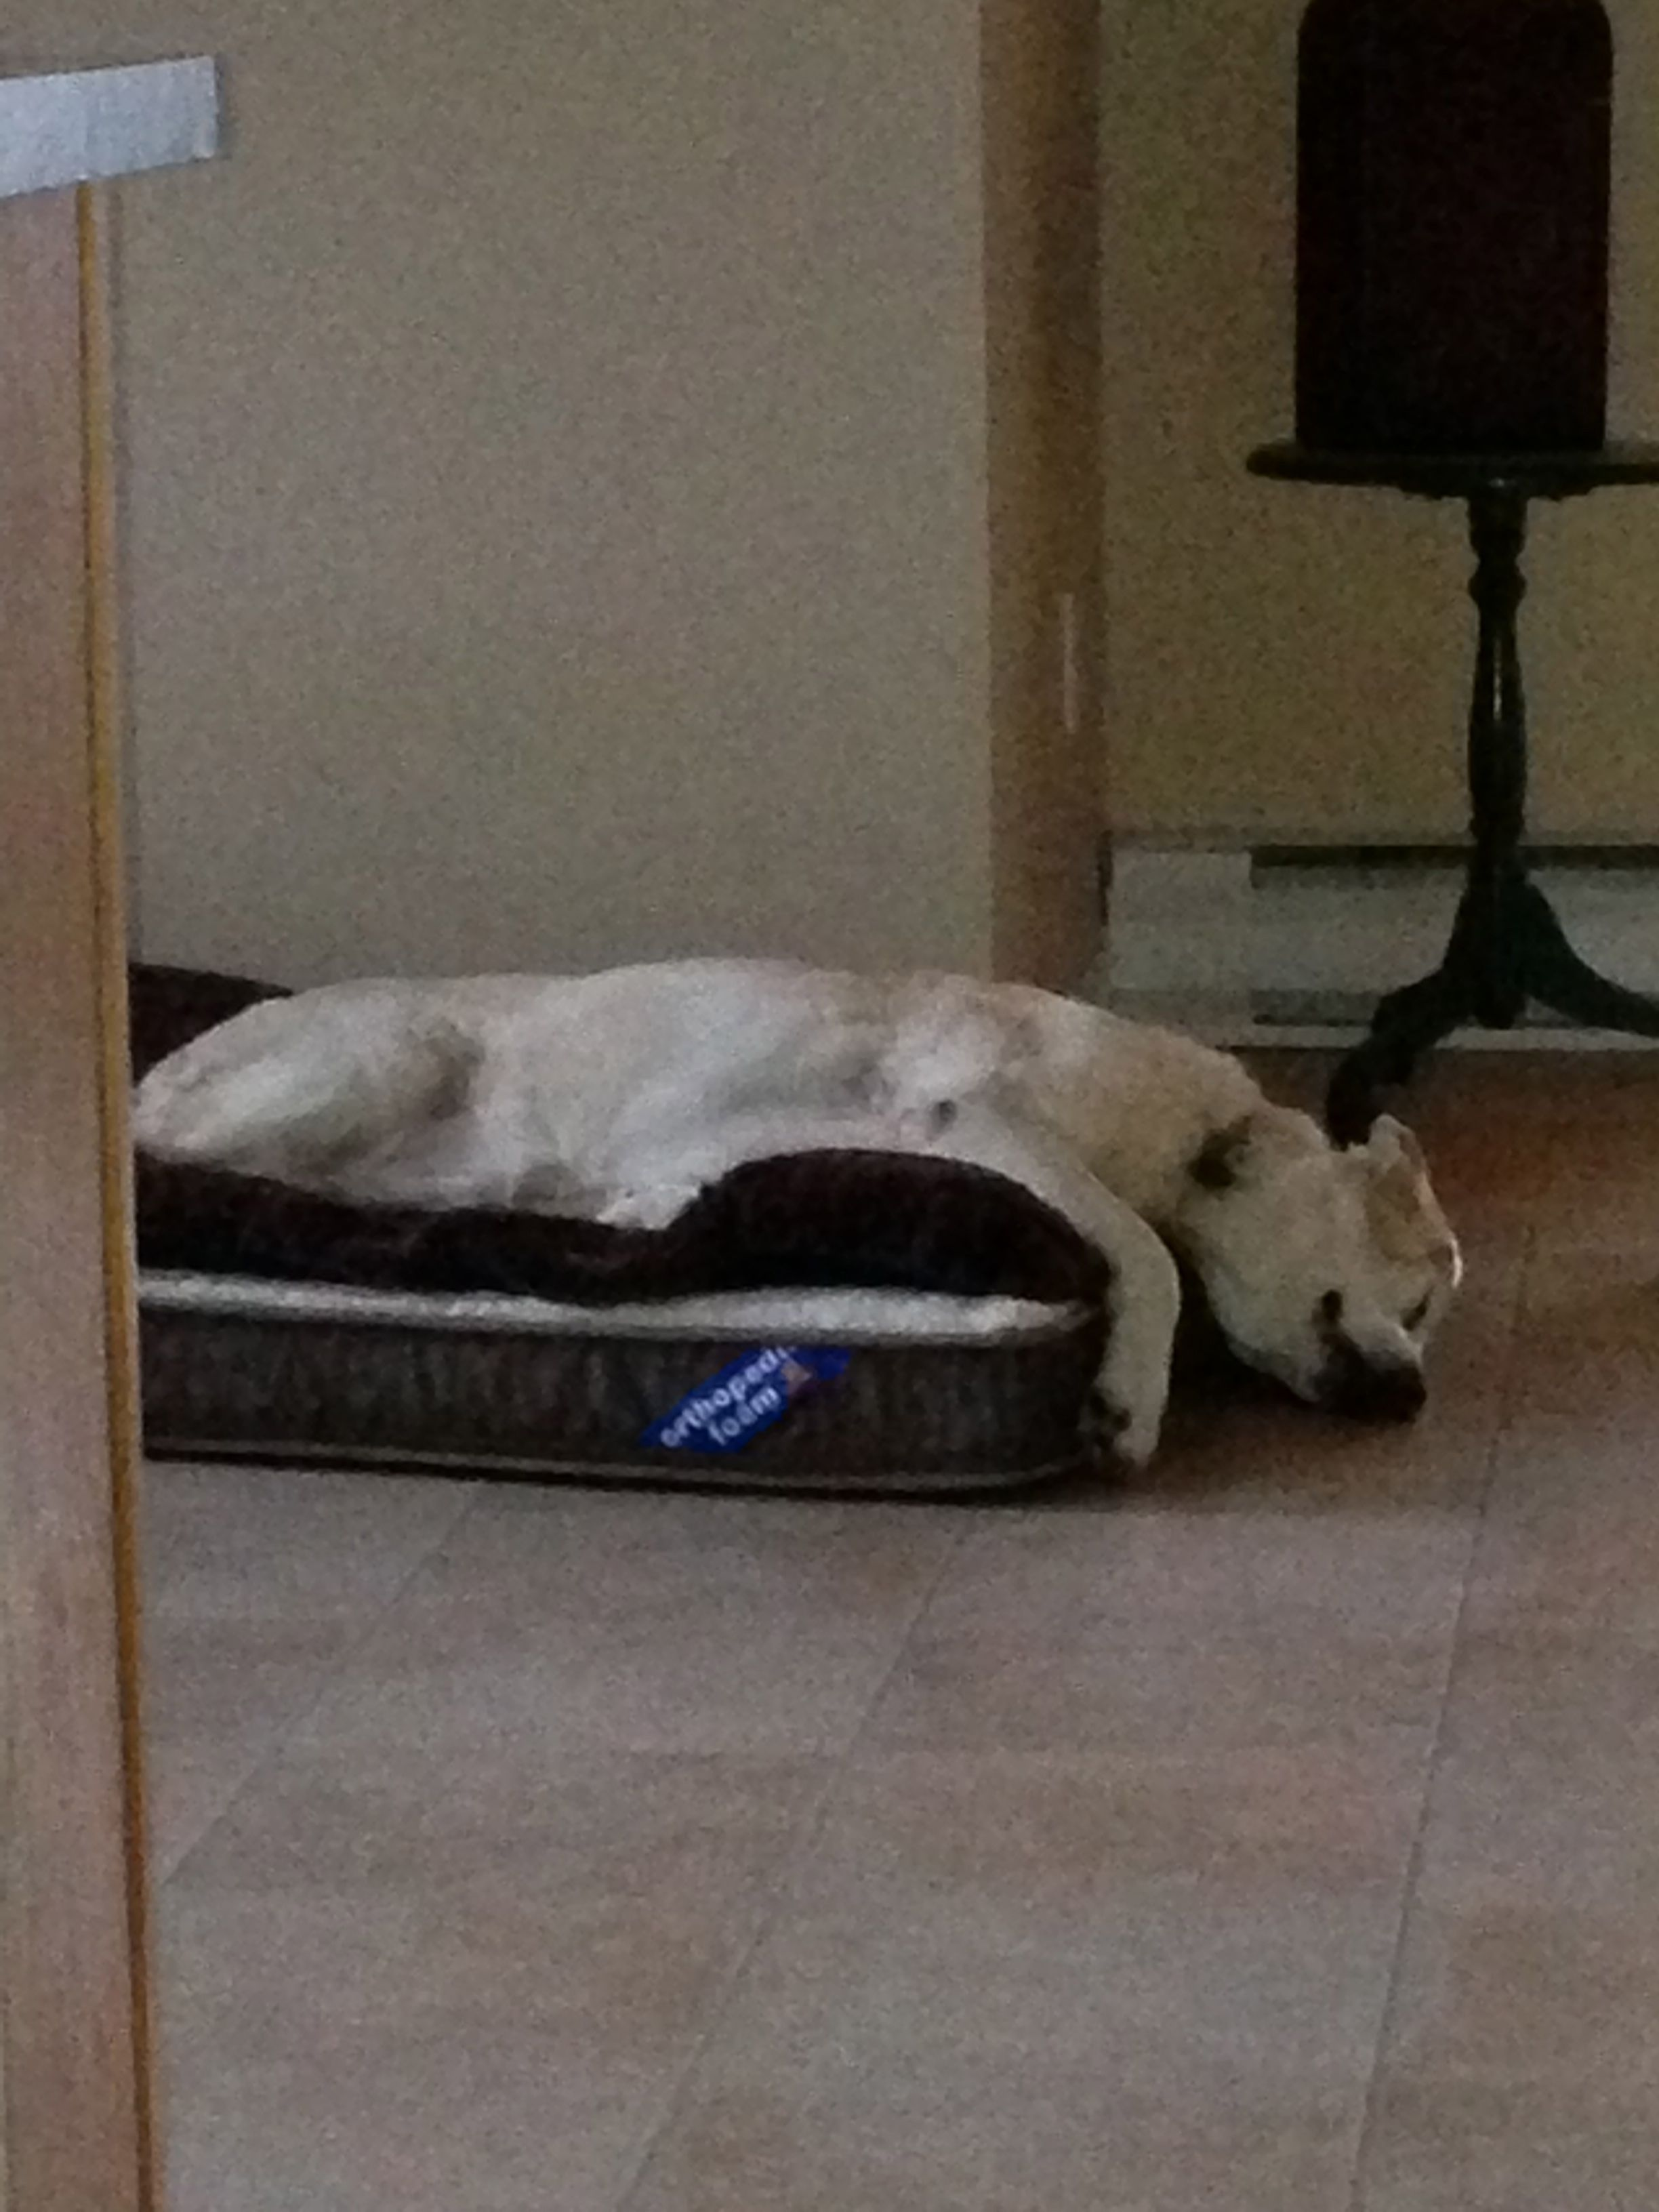 Hanna loves her bed and is pooped after a walk. Doesn't take much these days.